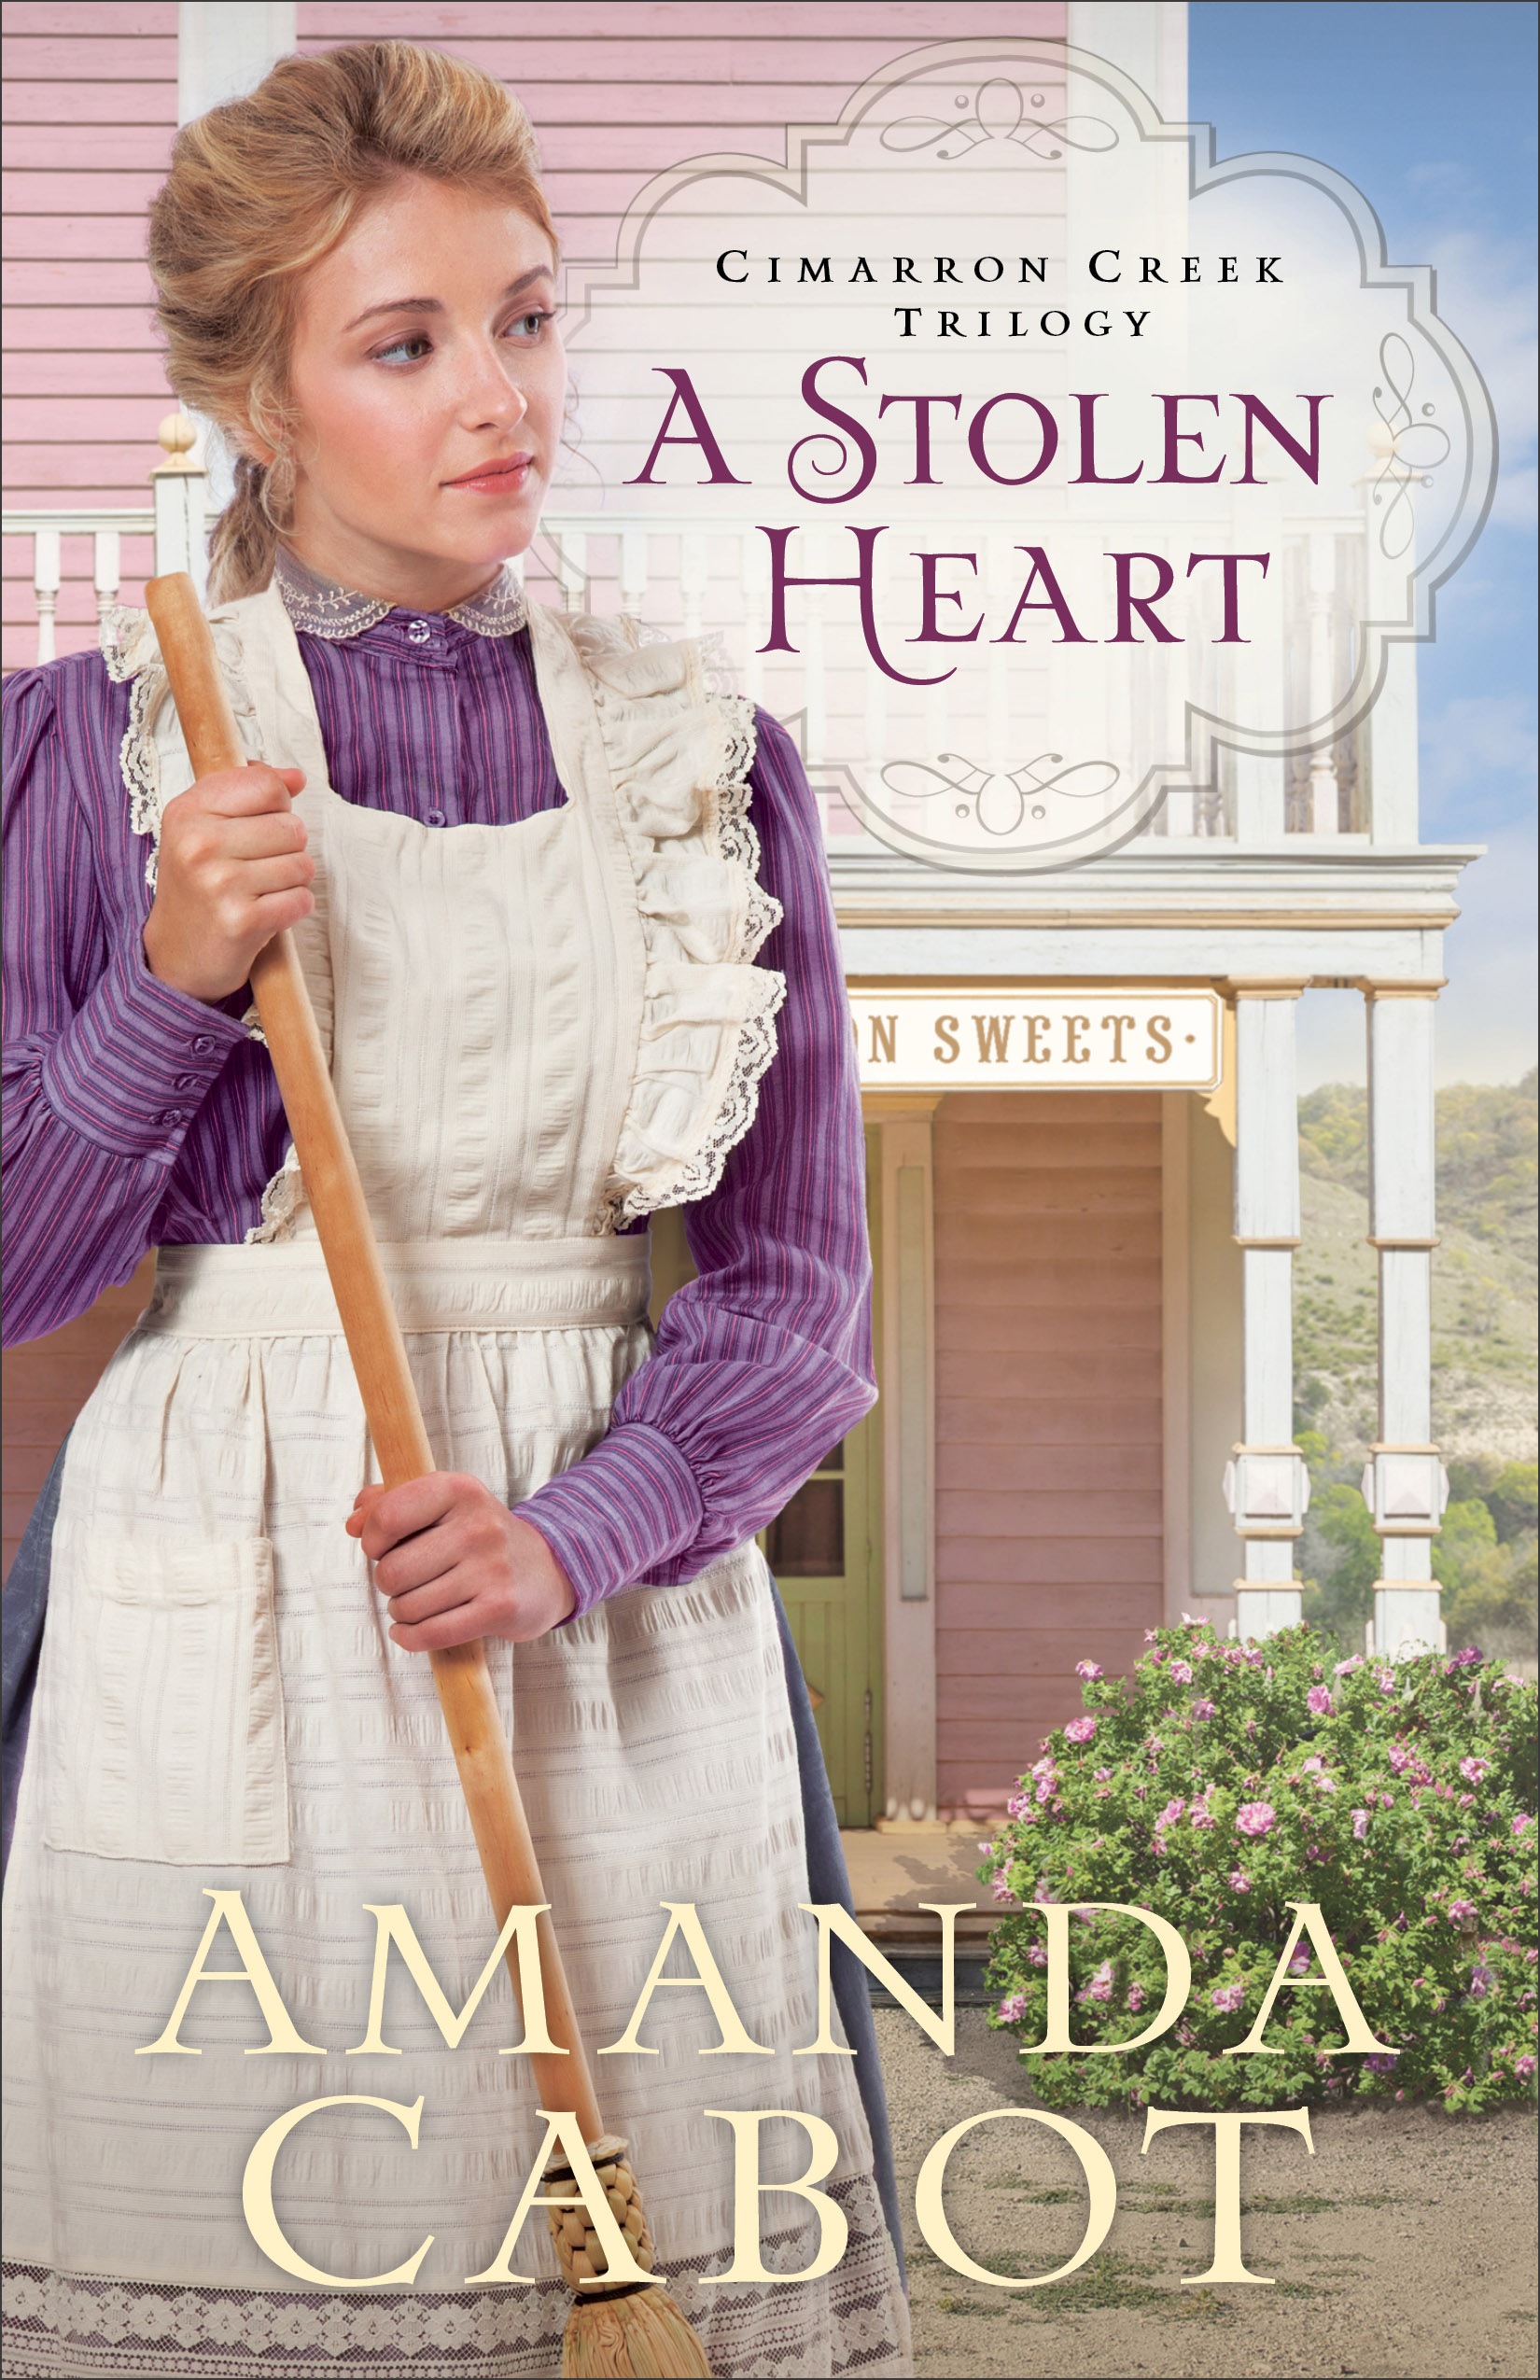 Book review of A Stolen Heart by Amanda Cabot (Revell) by papertapepins